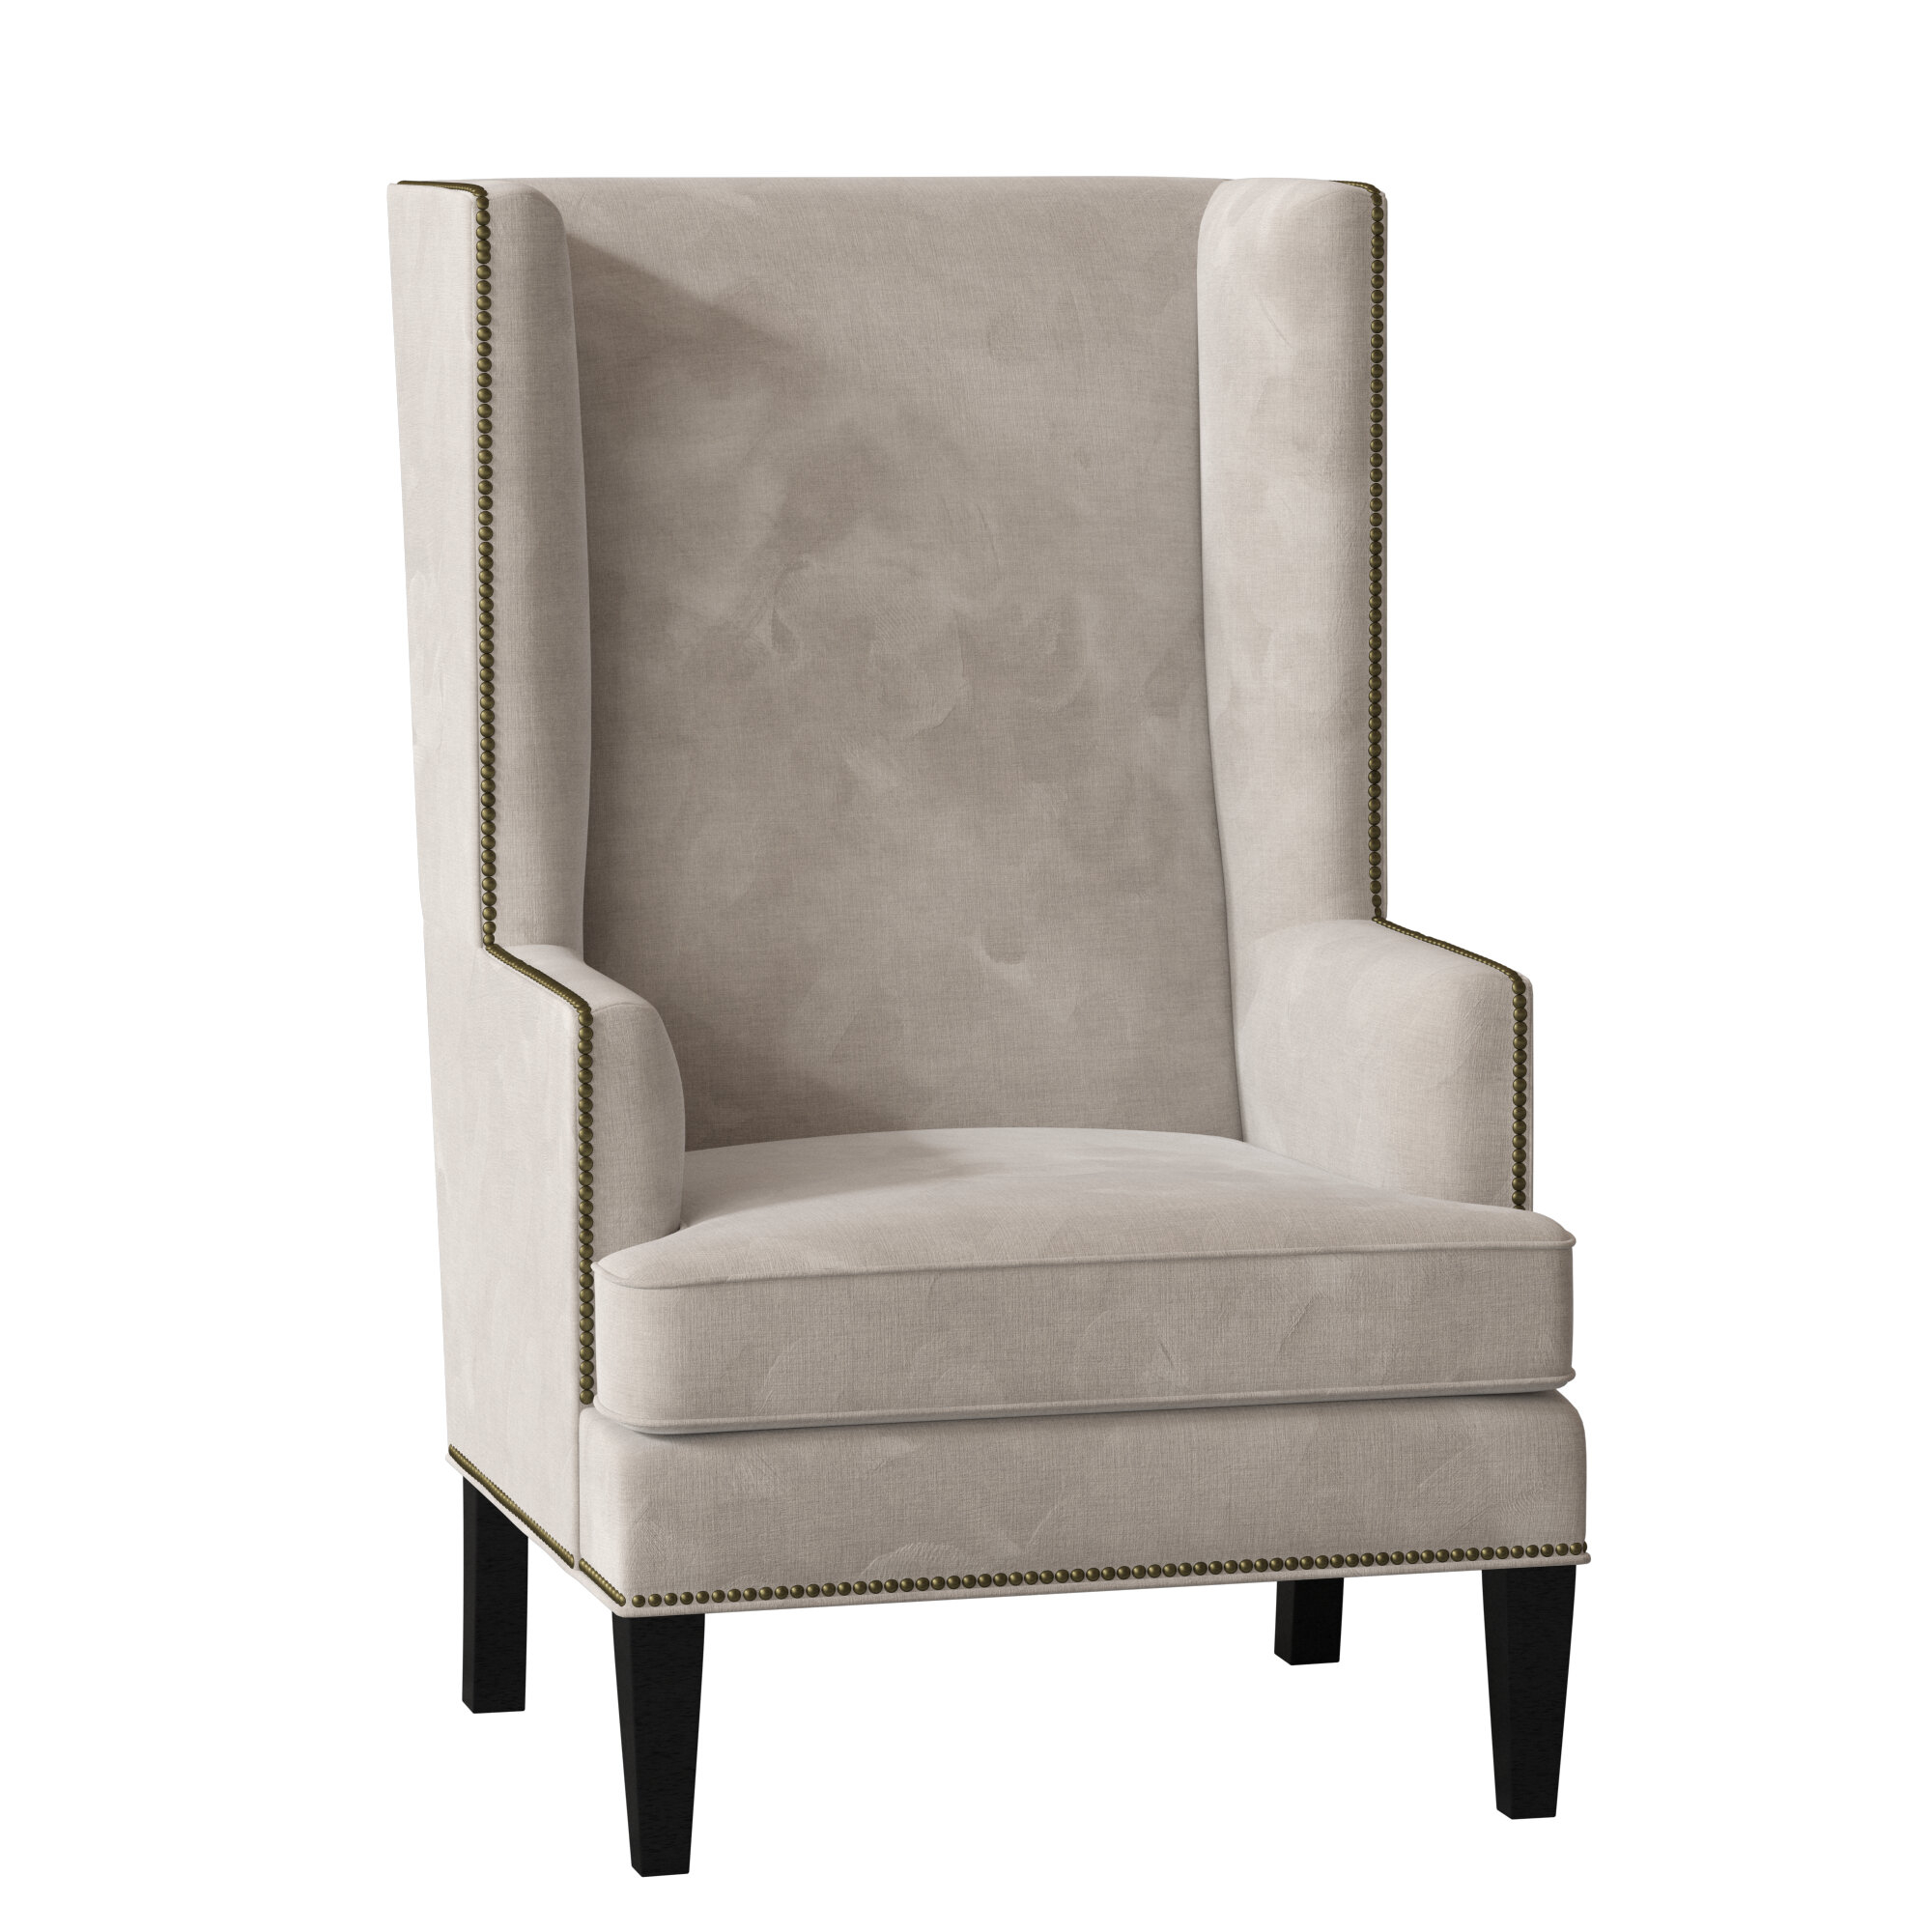 Espresso Wood Wingback Accent Chairs You'Ll Love In 2021 Inside Waterton Wingback Chairs (View 8 of 15)